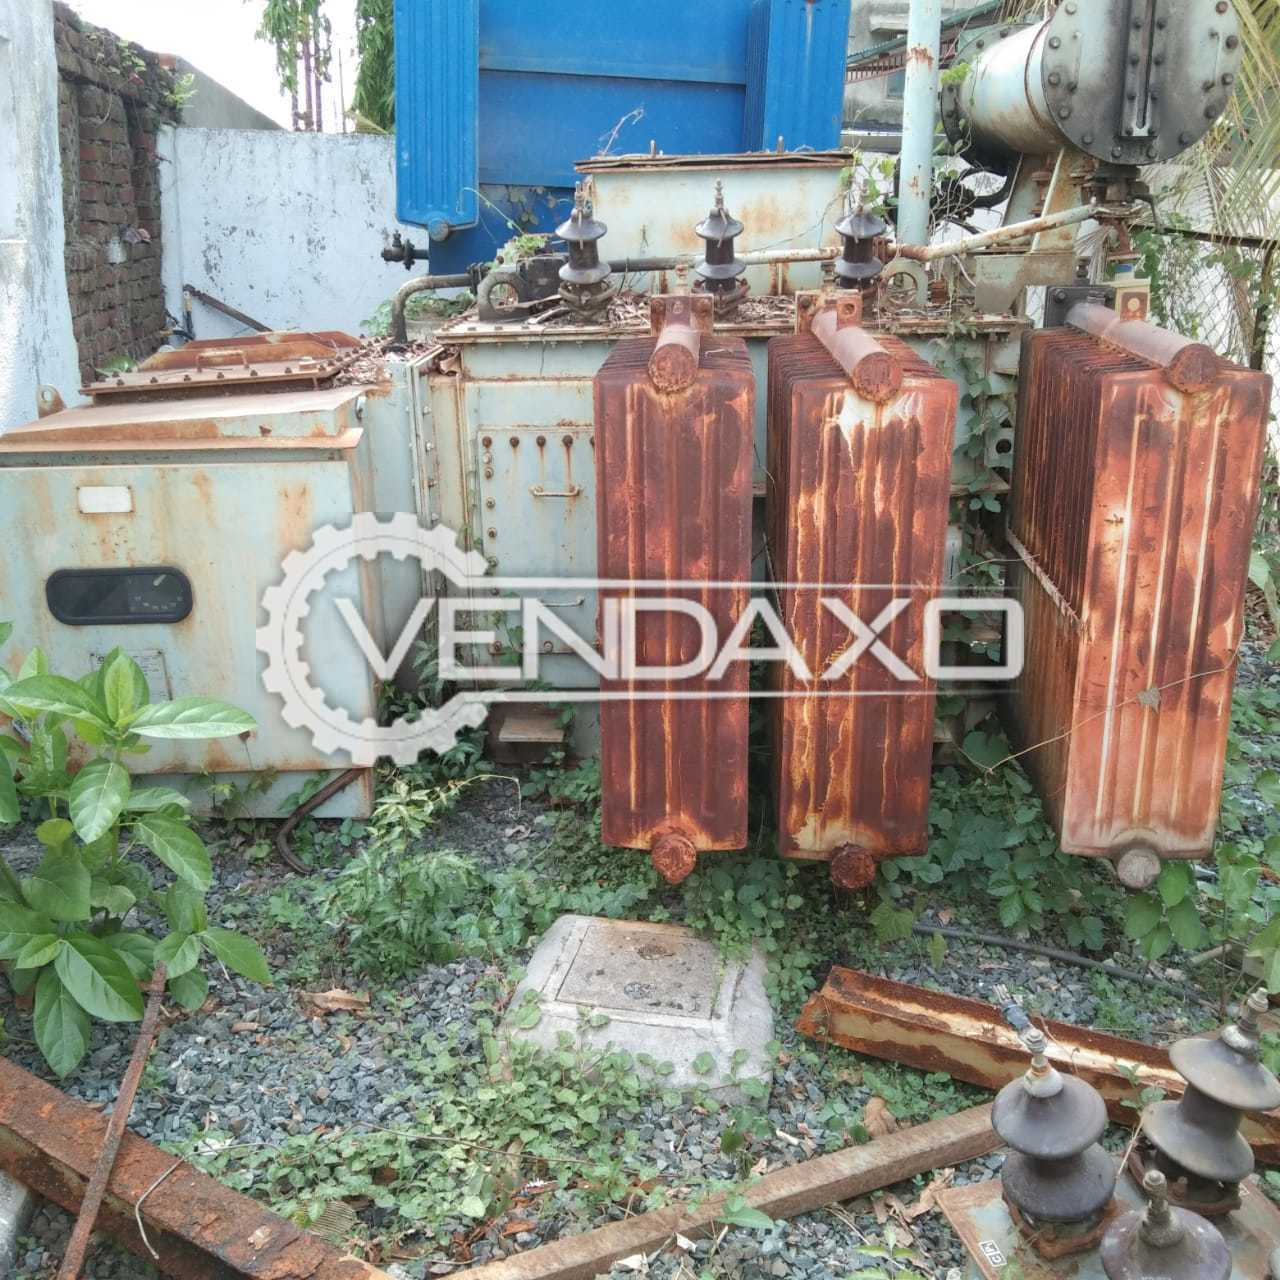 The Delta Group Transformer - 750 Kva With Crompton Greaves Oltc